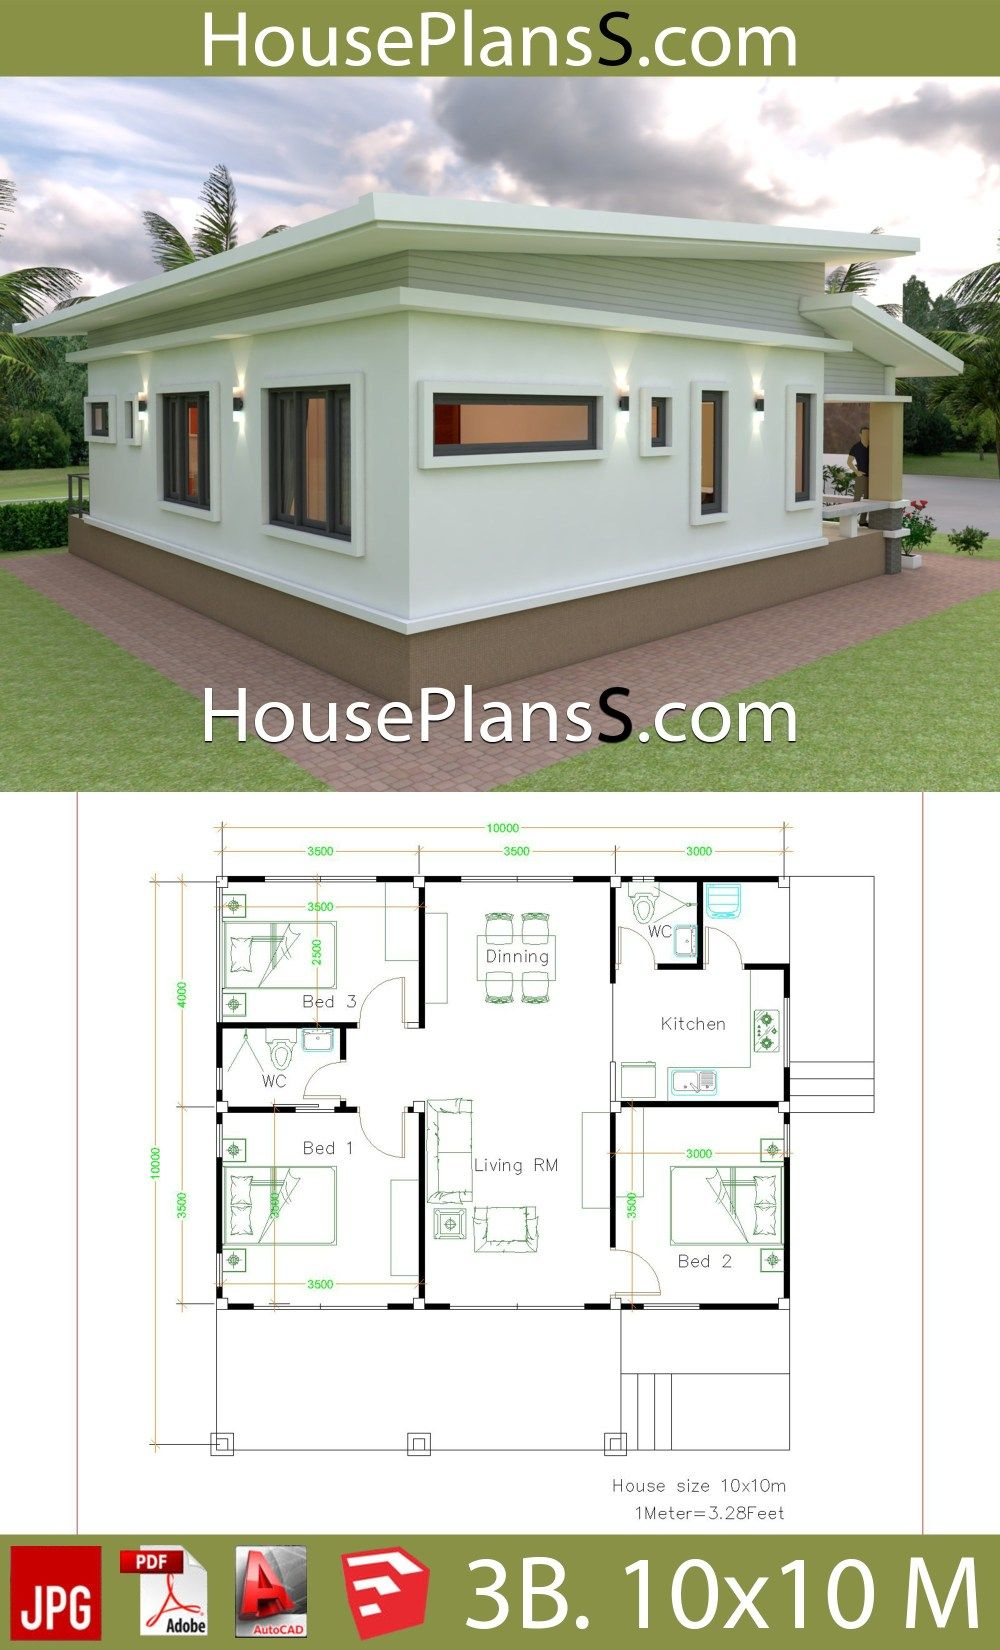 House Design Plans 10x10 With 3 Bedrooms Full Interior With Images Simple House Design Small House Blueprints Cottage Style House Plans